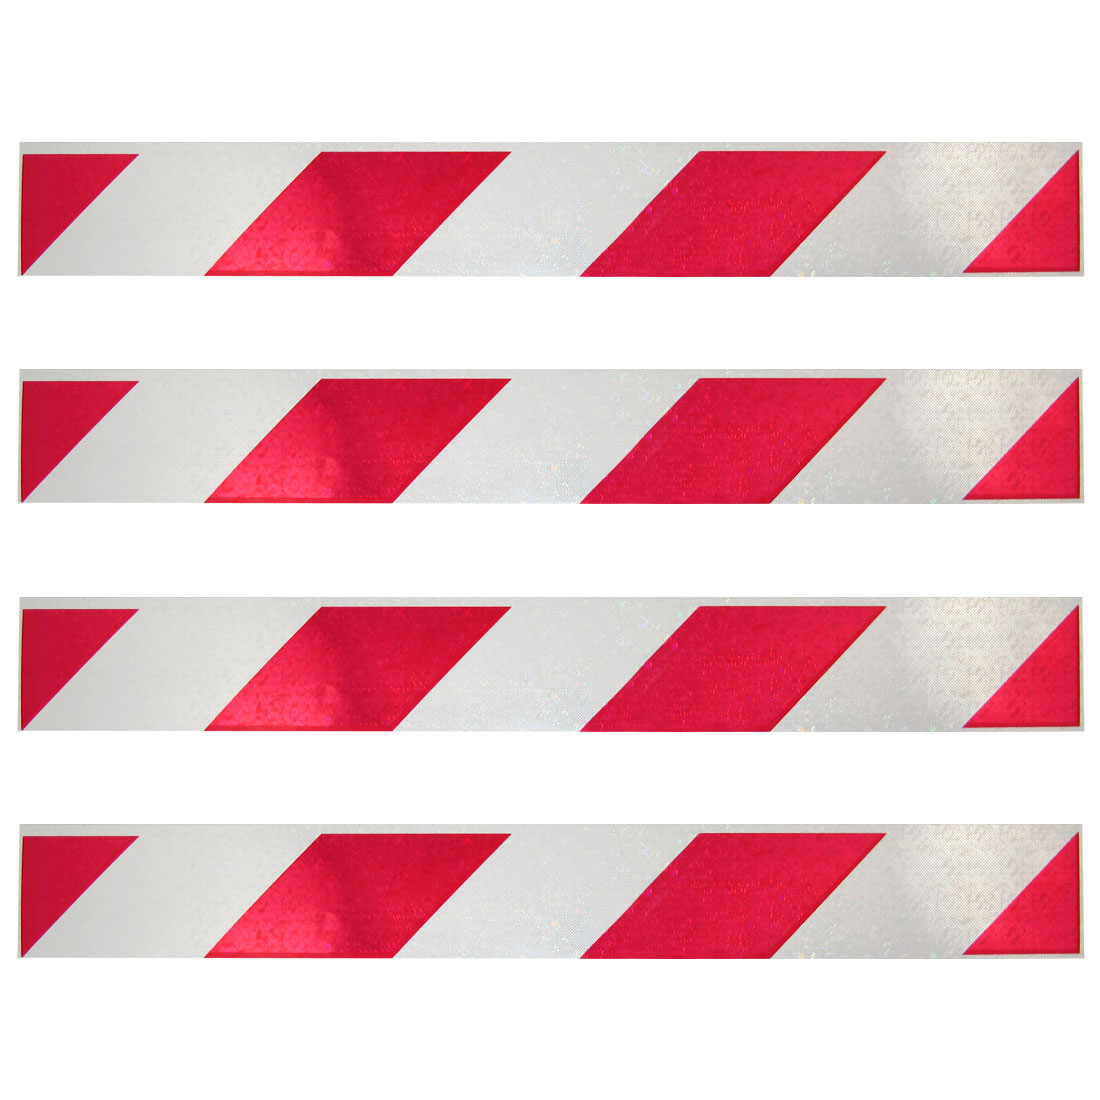 4 x Auto Decor White Red Gleamy Stripes Printed Reflective Stickers